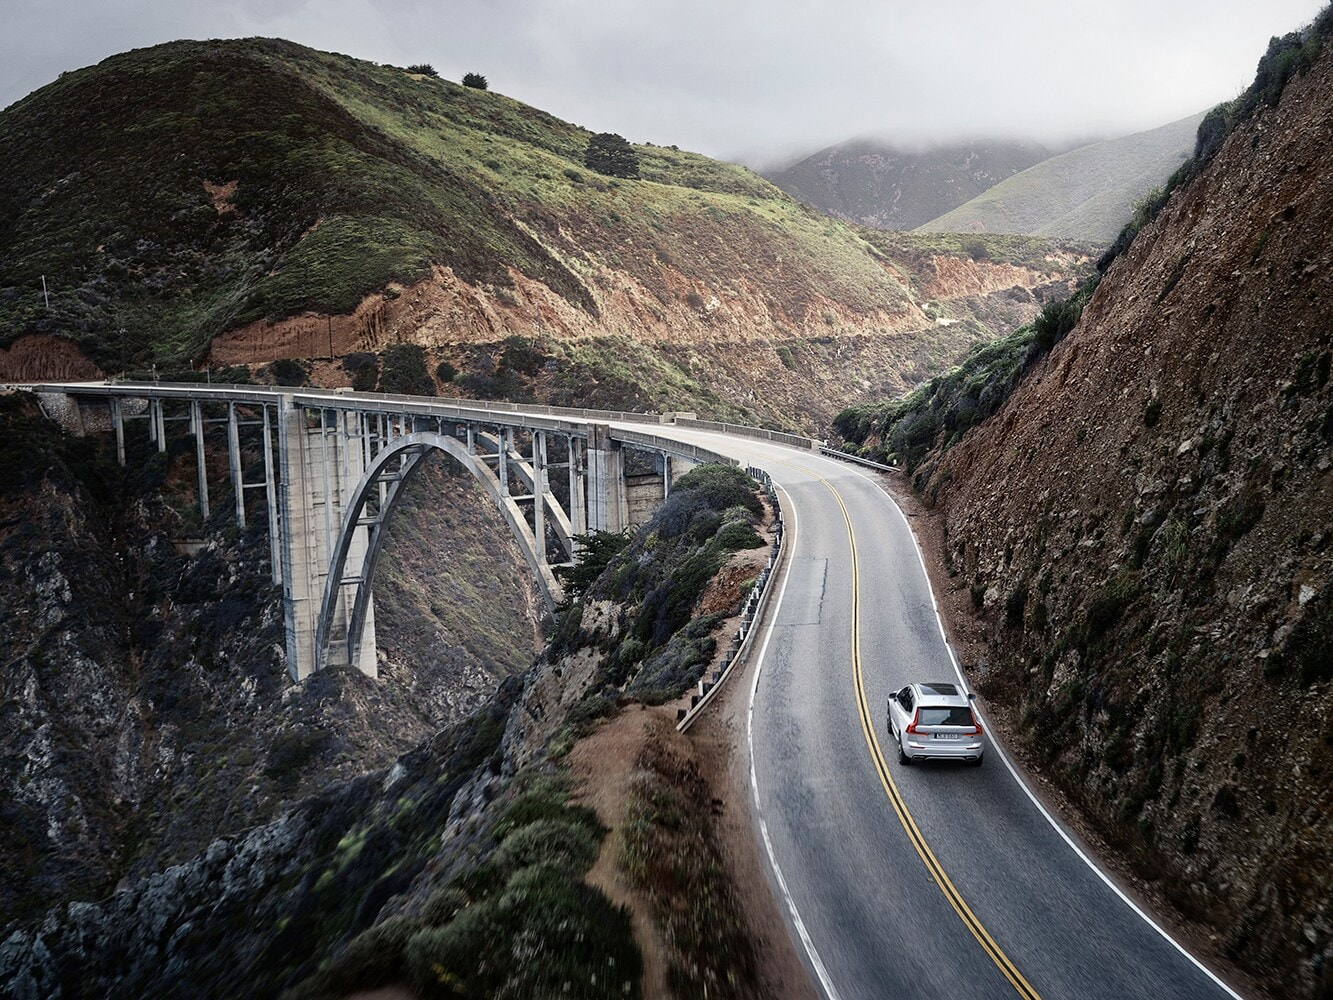 The new Volvo XC60 R-Design driving along a mountain road towards a bridge